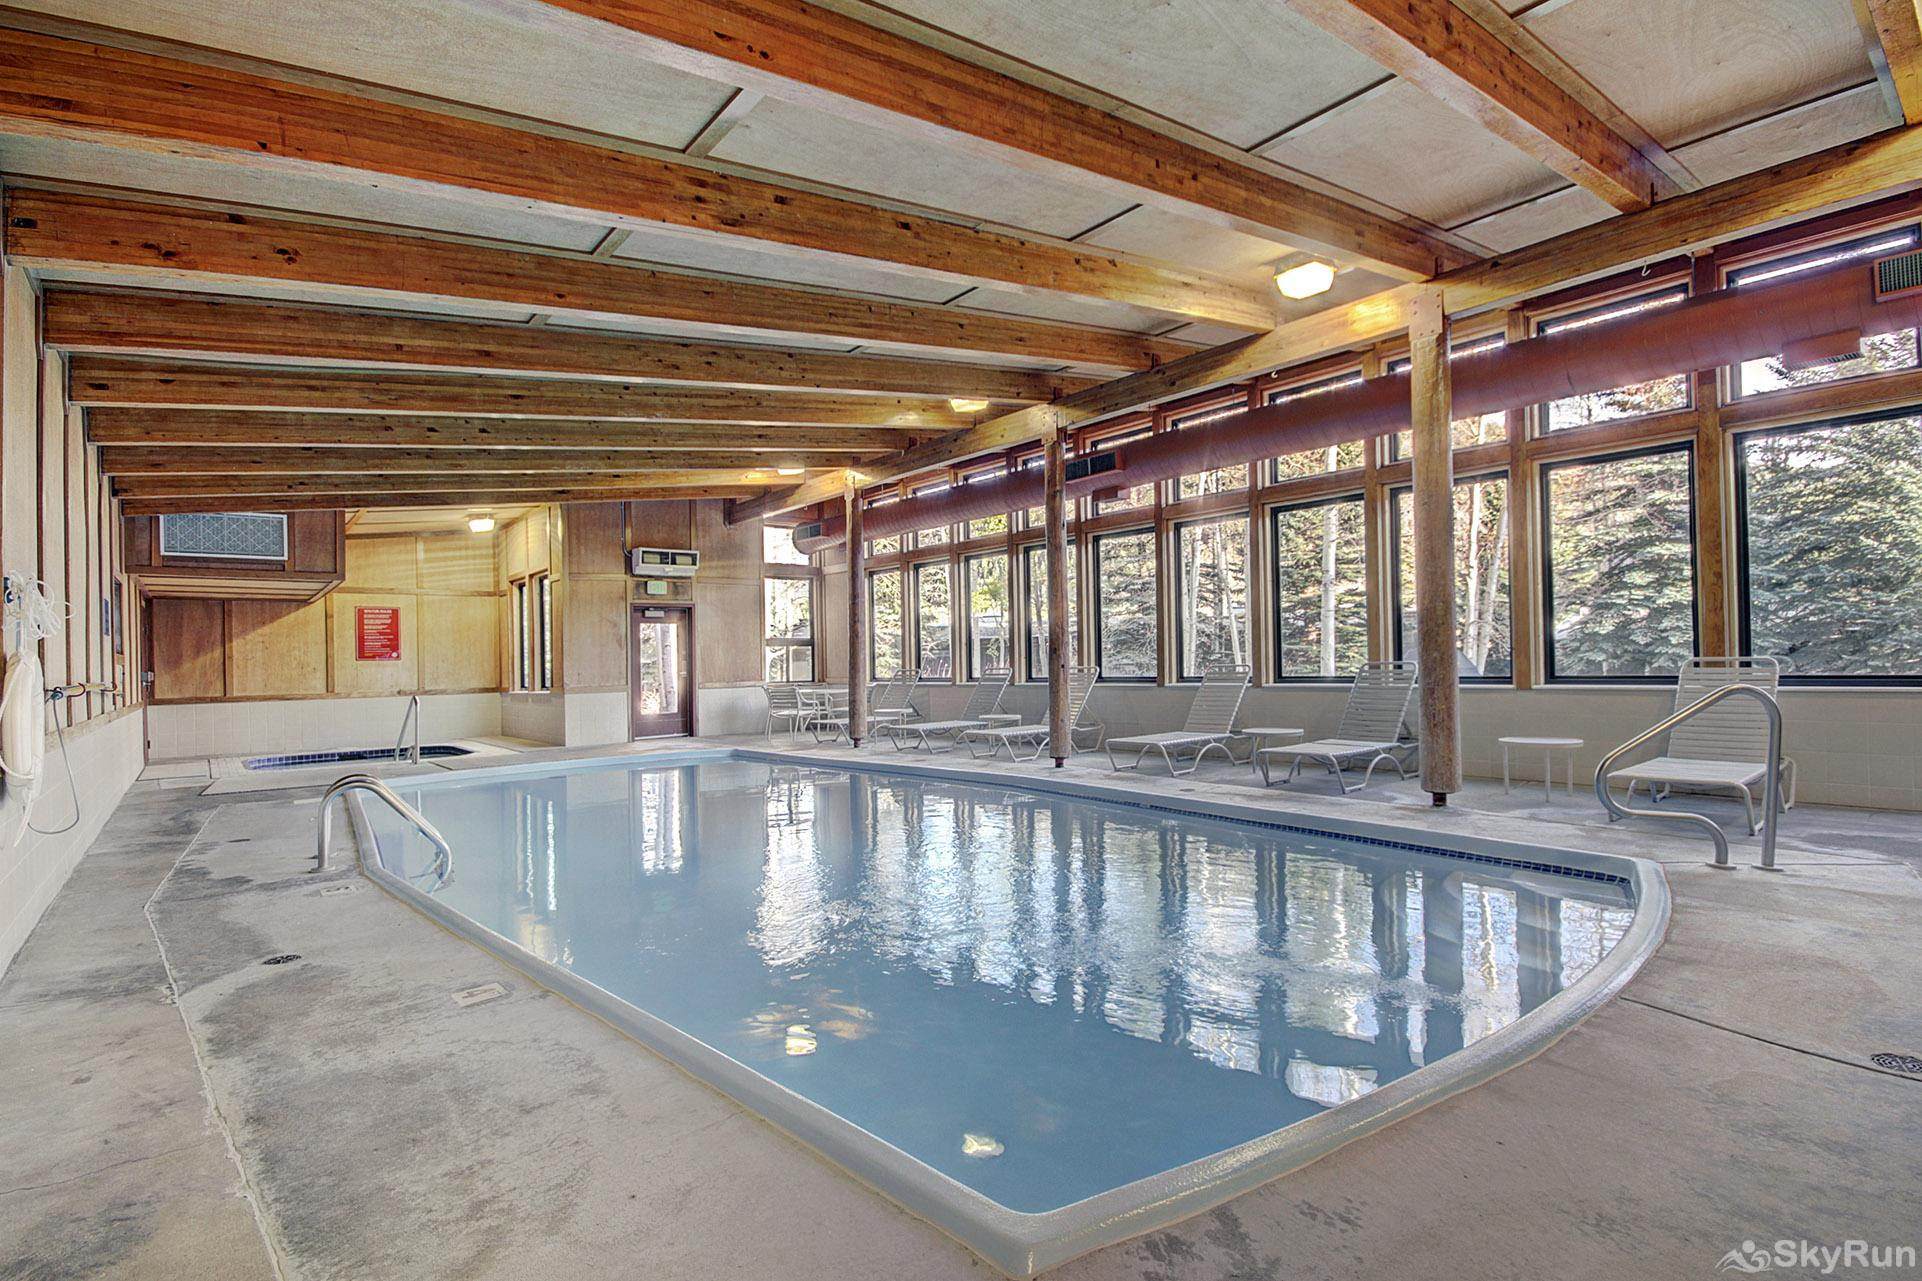 2019 Lodgepole Indoor Pool